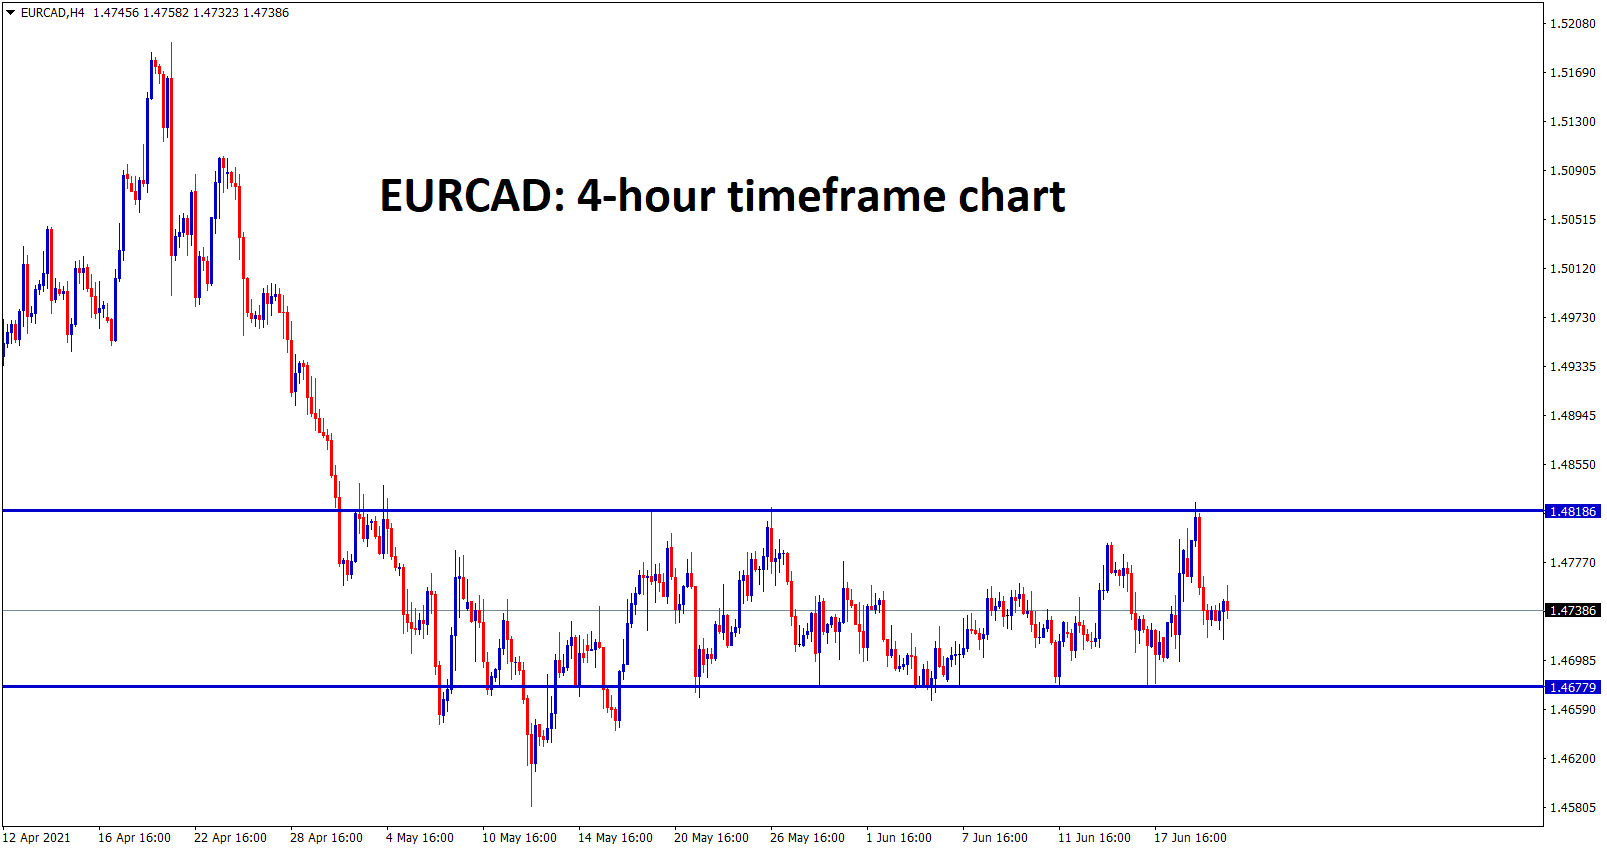 EURCAD is ranging between the small support and resistance level